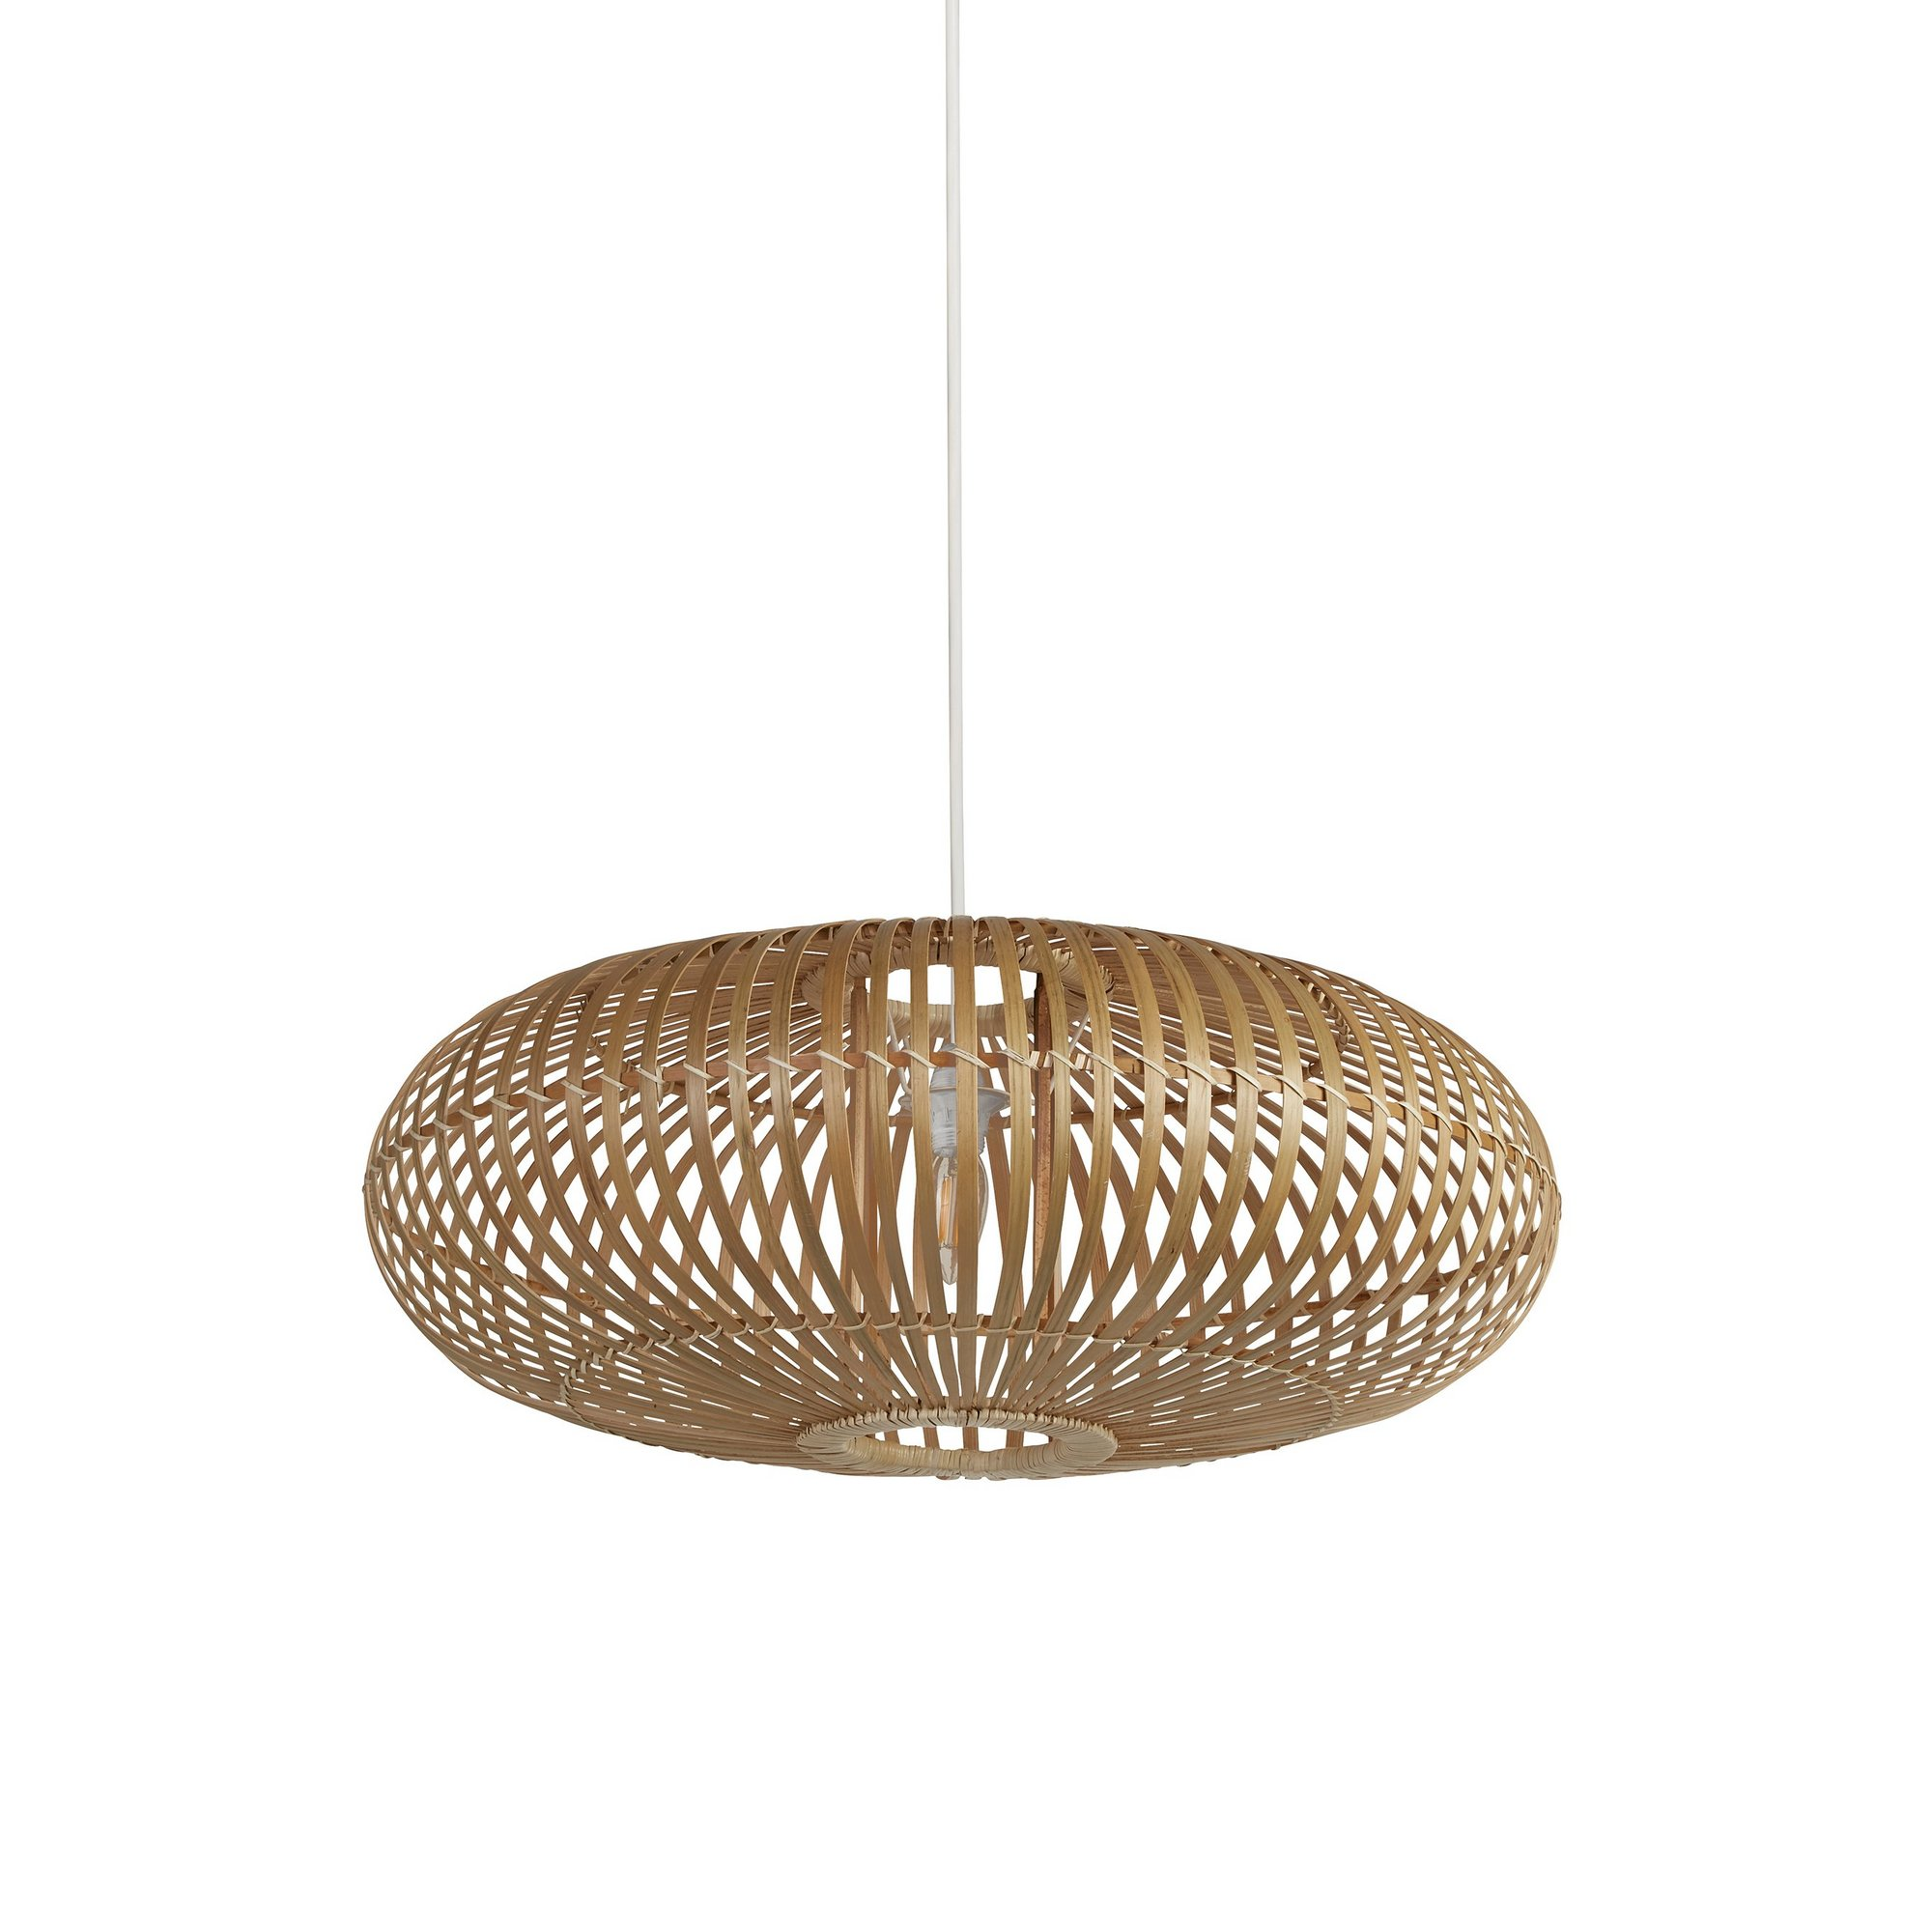 Image of Bamboo Curved Easy Fit Light Shade